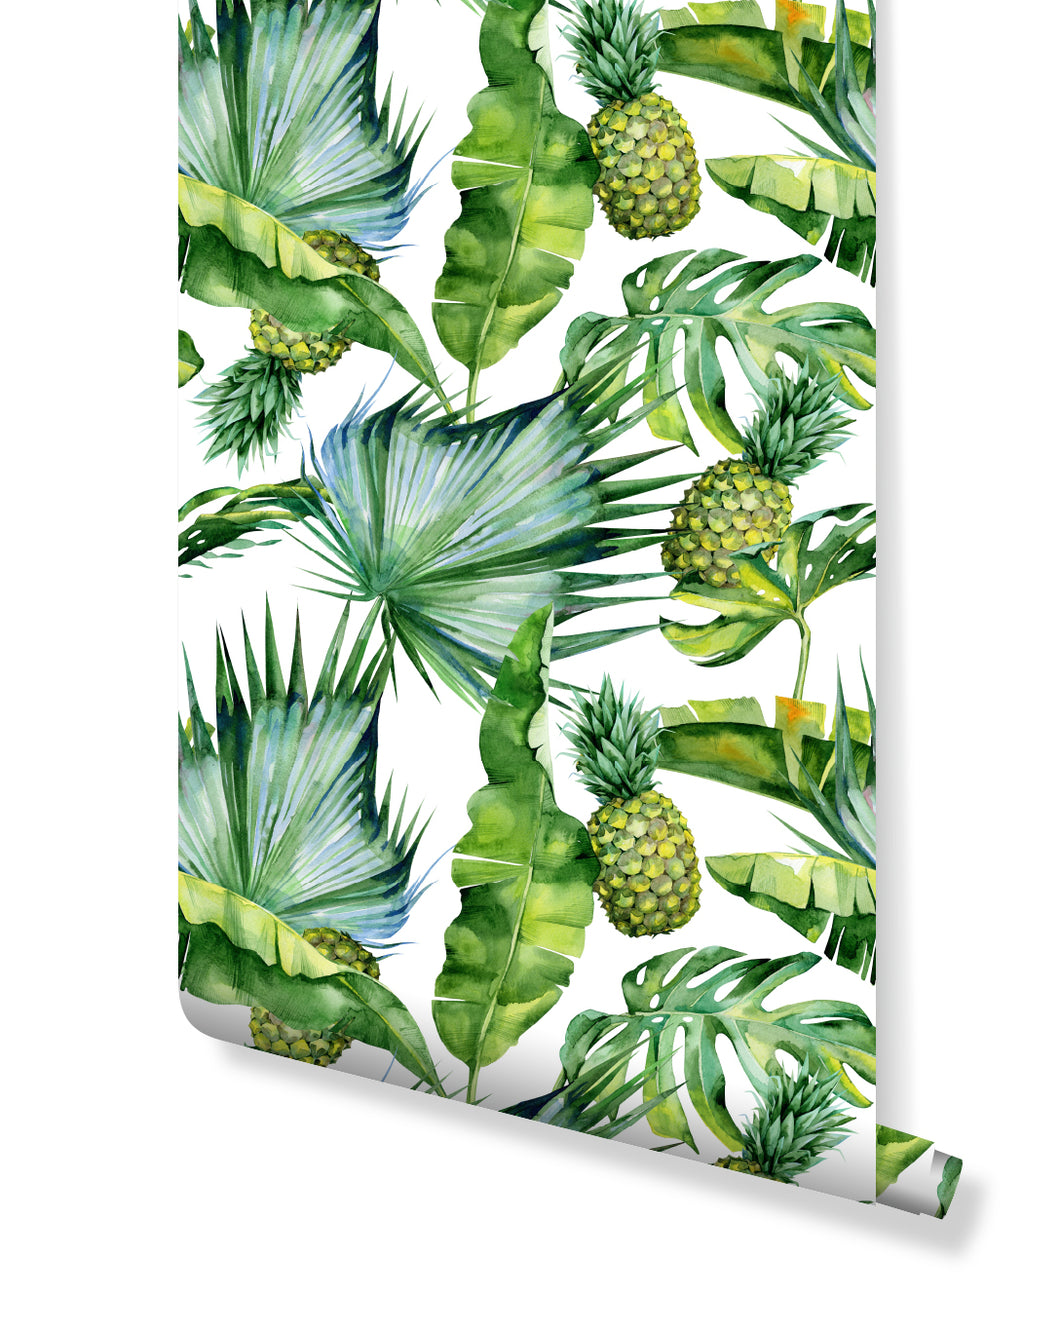 Self Adhesive Removable Wallpaper with Tropical Palm Leaves and Pineapple Jungle Theme Vinyl Wall Decal CC044